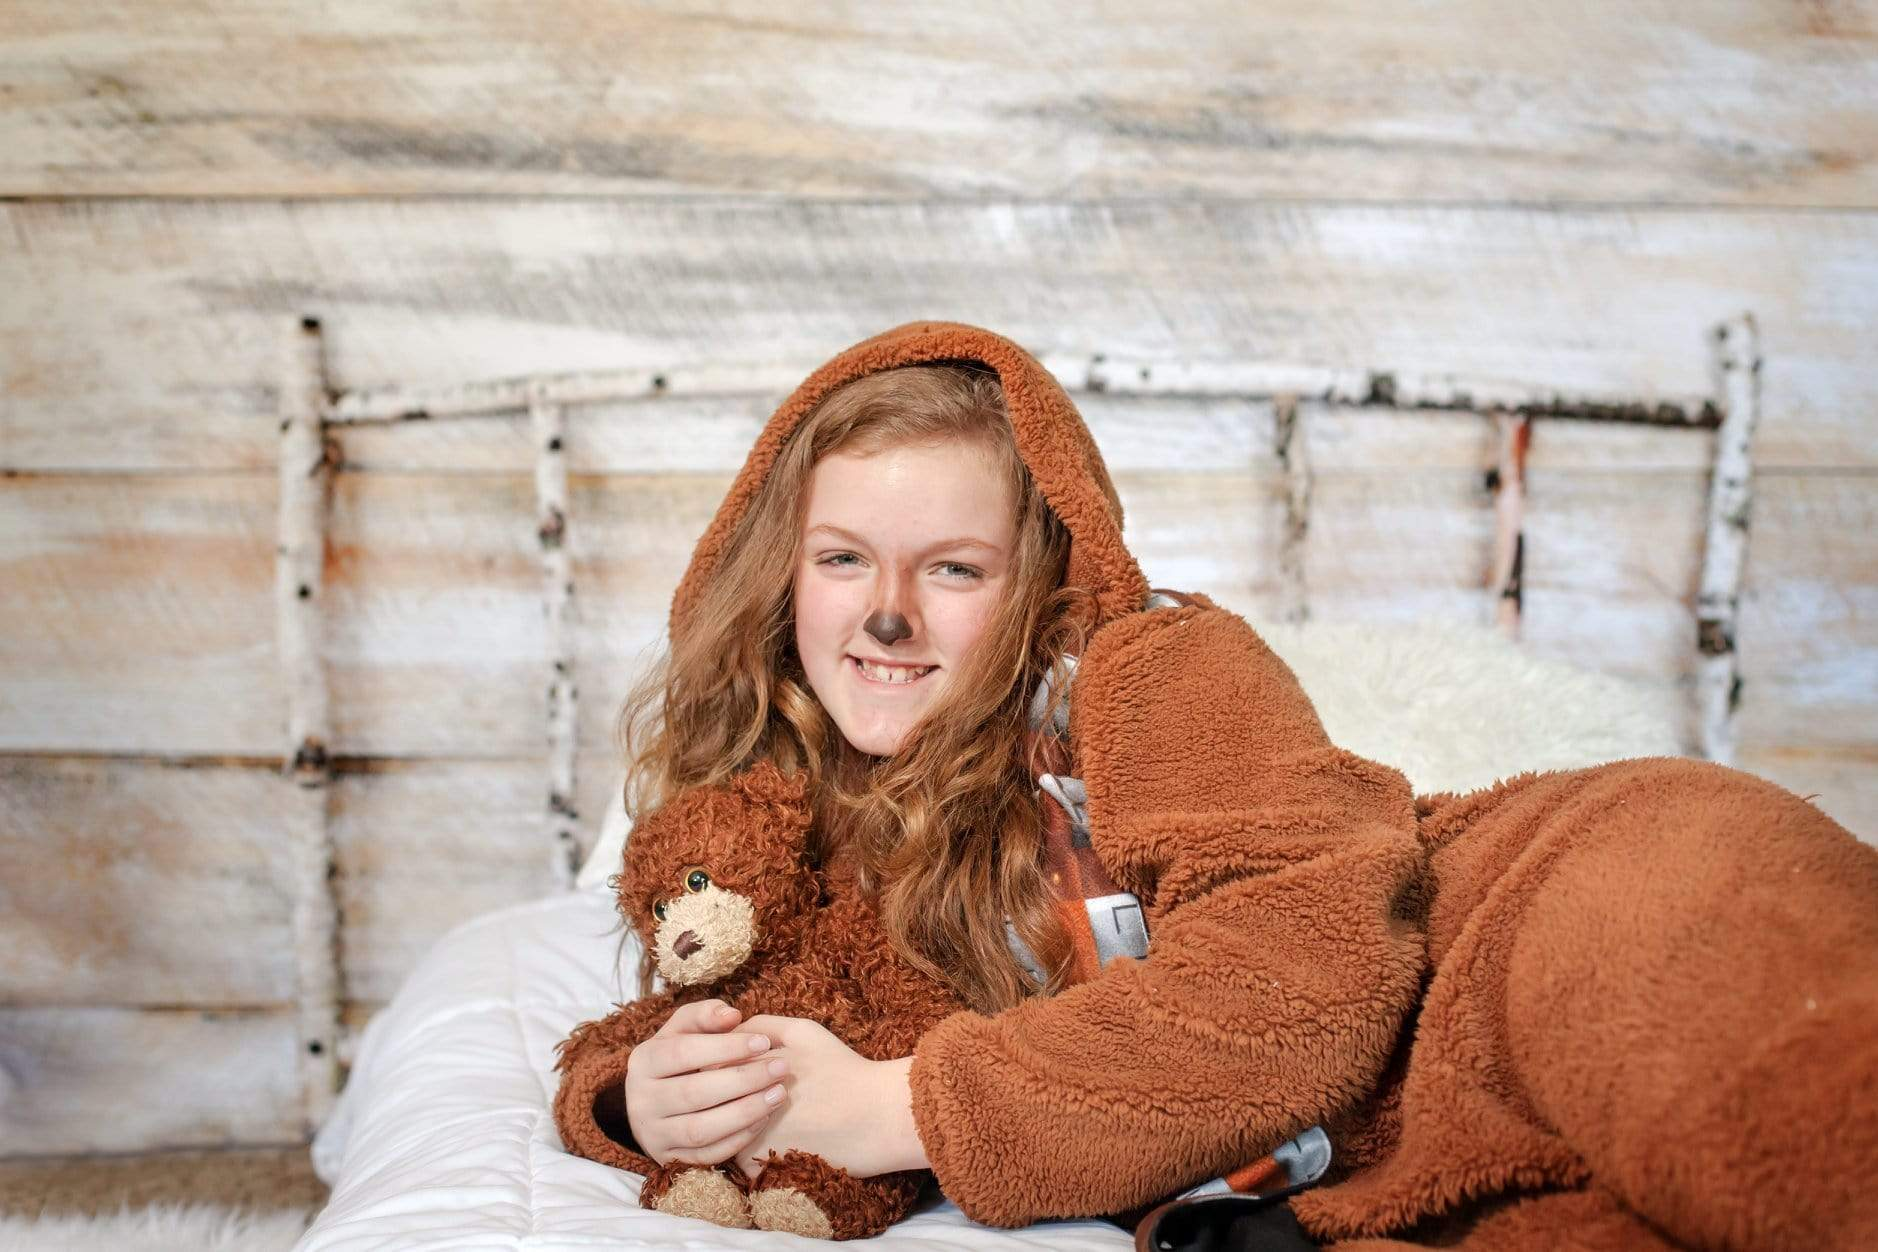 Load image into Gallery viewer, Katebackdrop:Kate Christmas Wood Wall Birch bed Simple Backdrop designed by Arica Kirby